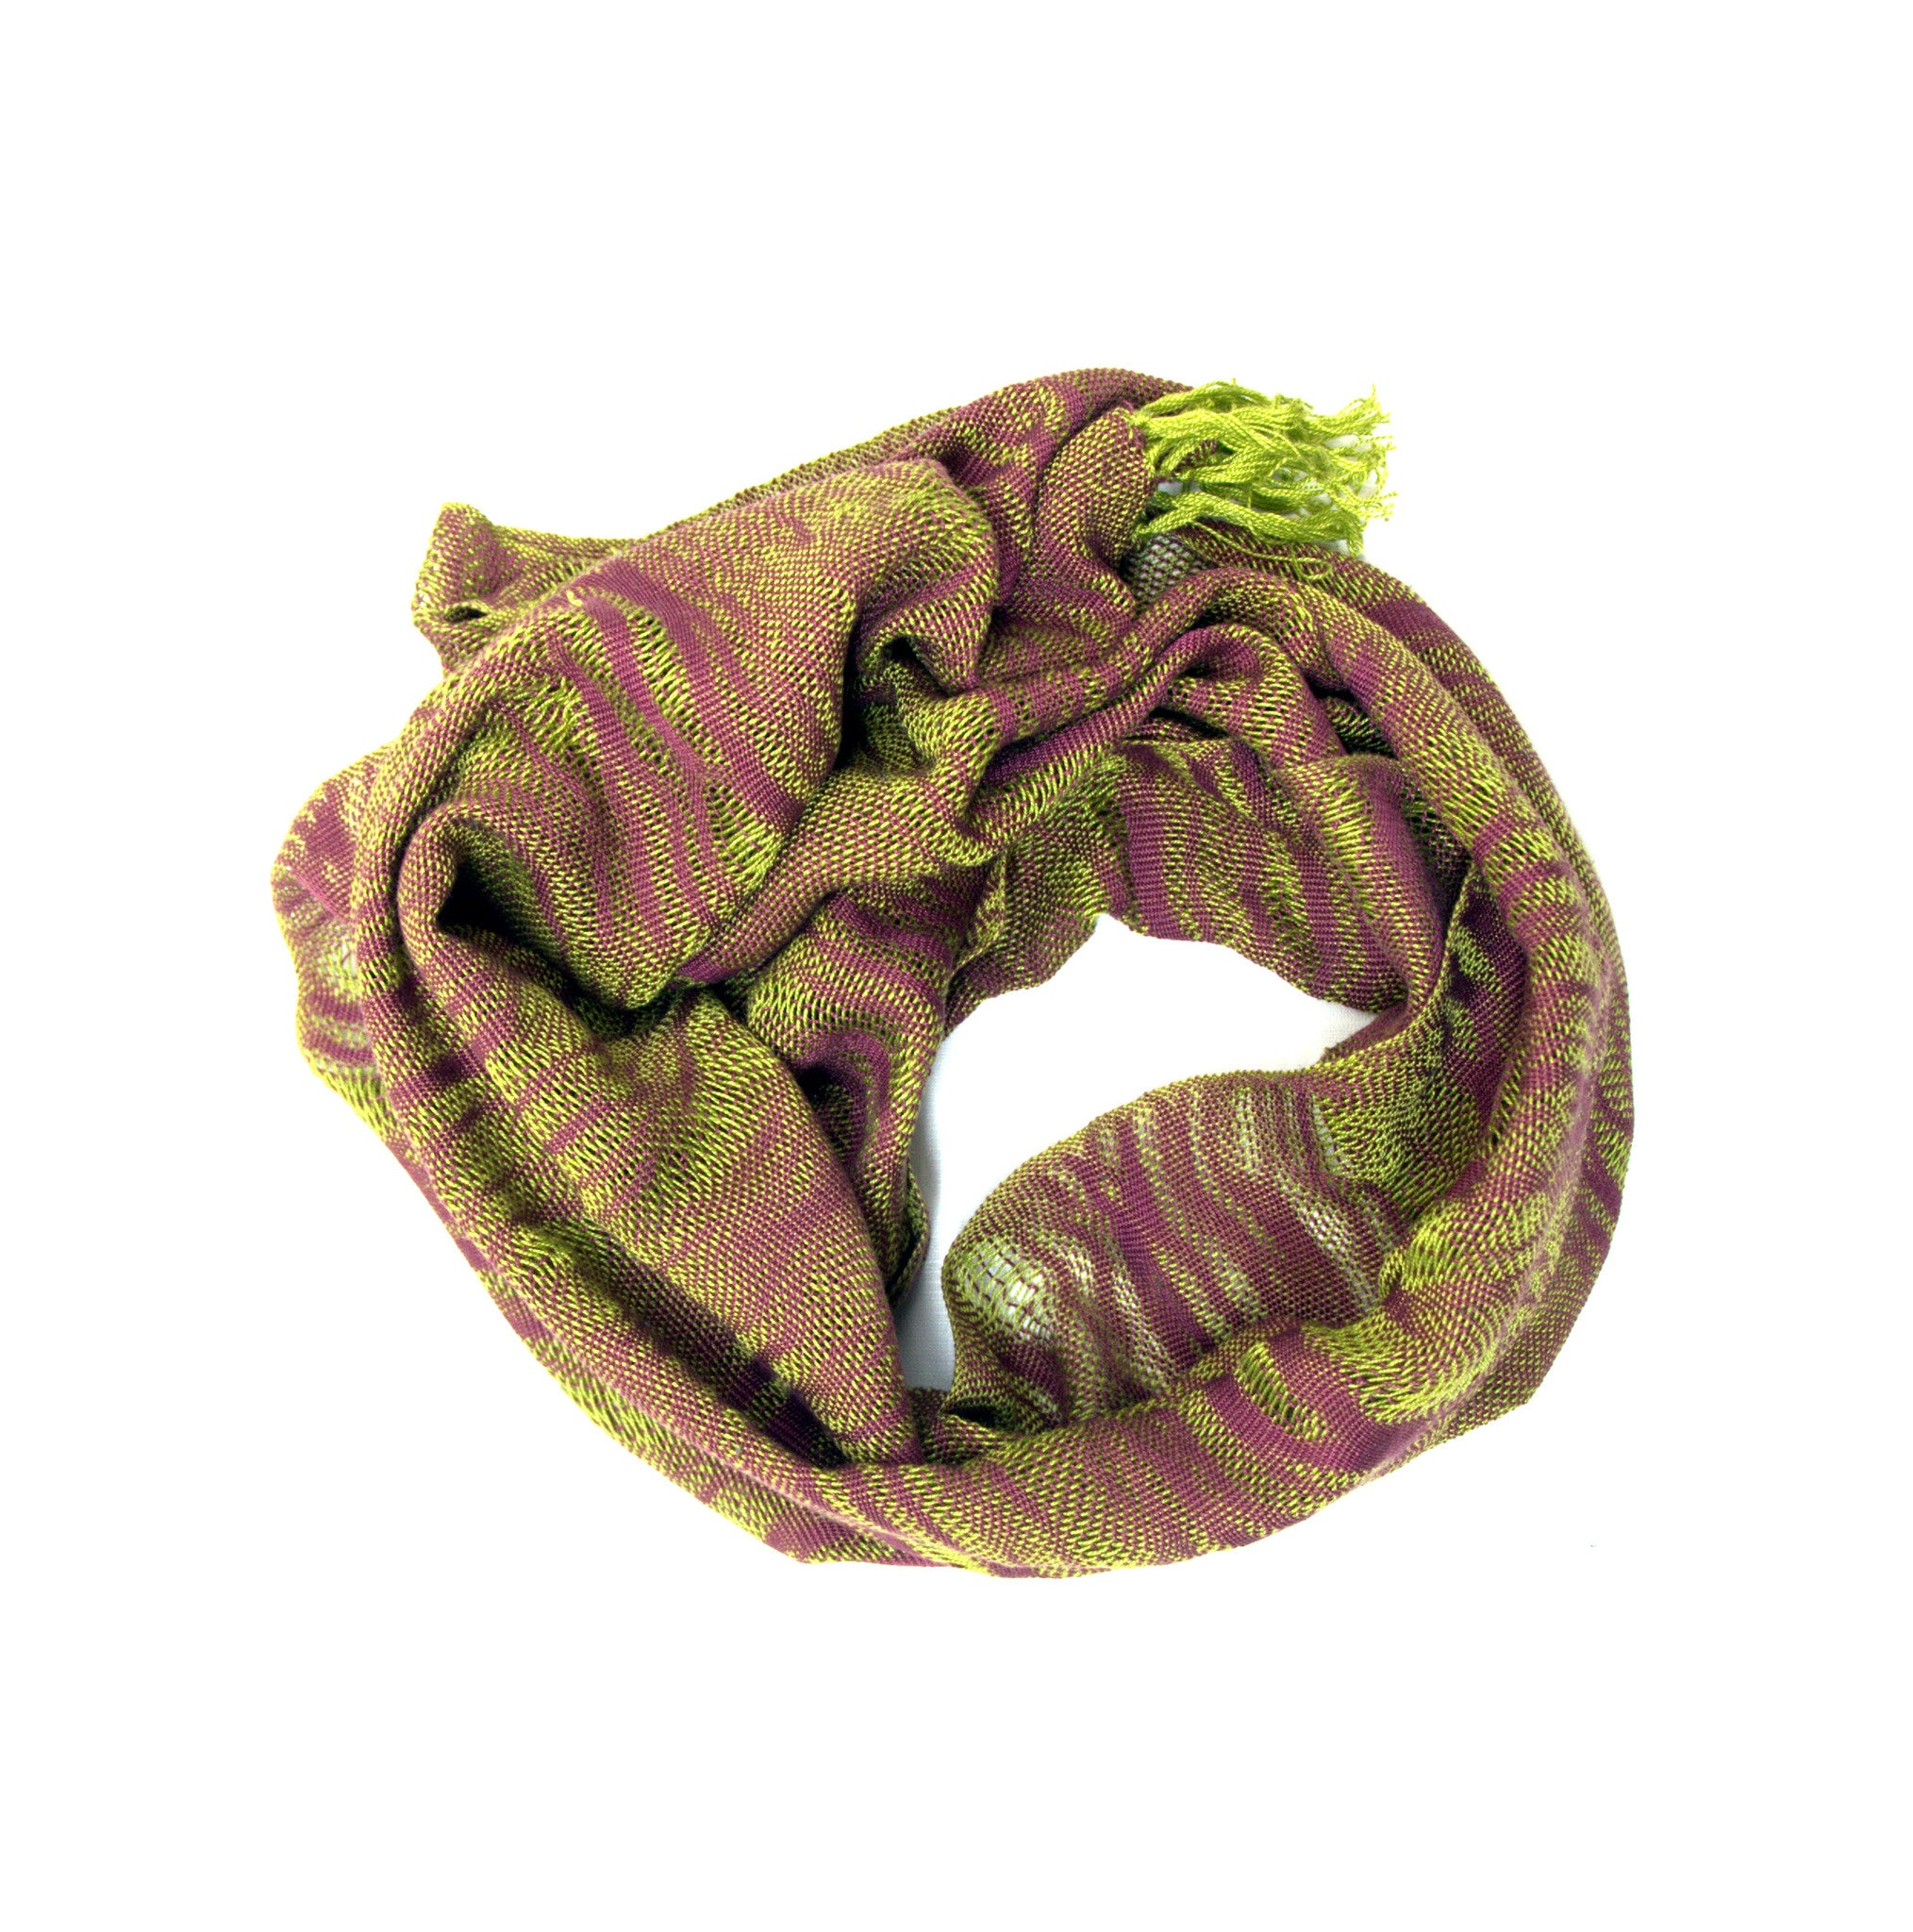 Sunday hand woven cotton scarf : chartreuse and mauve